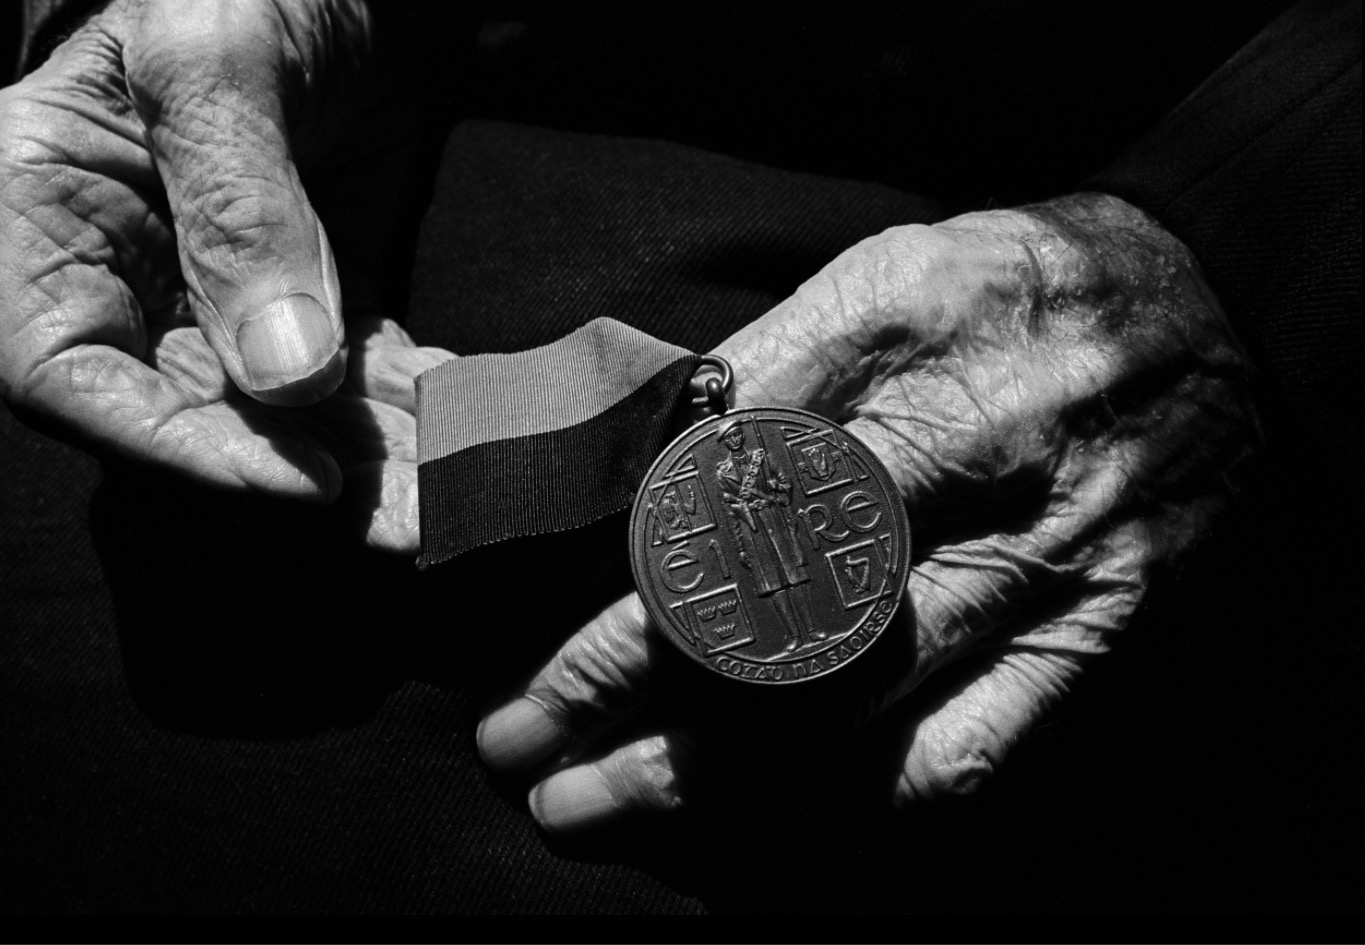 Seamus Murphy: The hands of Batt Moriarty at home in County Cork holding his 'Black and Tan' medal awarded to IRA men who fought in Ireland's War of Independence with Britain. Batt Moriarty -Cork No. 4 Brigade. Intelligence Officer. IRA 1918-1923. | Seamus Murphy: Citizens | Friday 20 November 2020  – Friday 26 February 2021 | Source Arts Centre